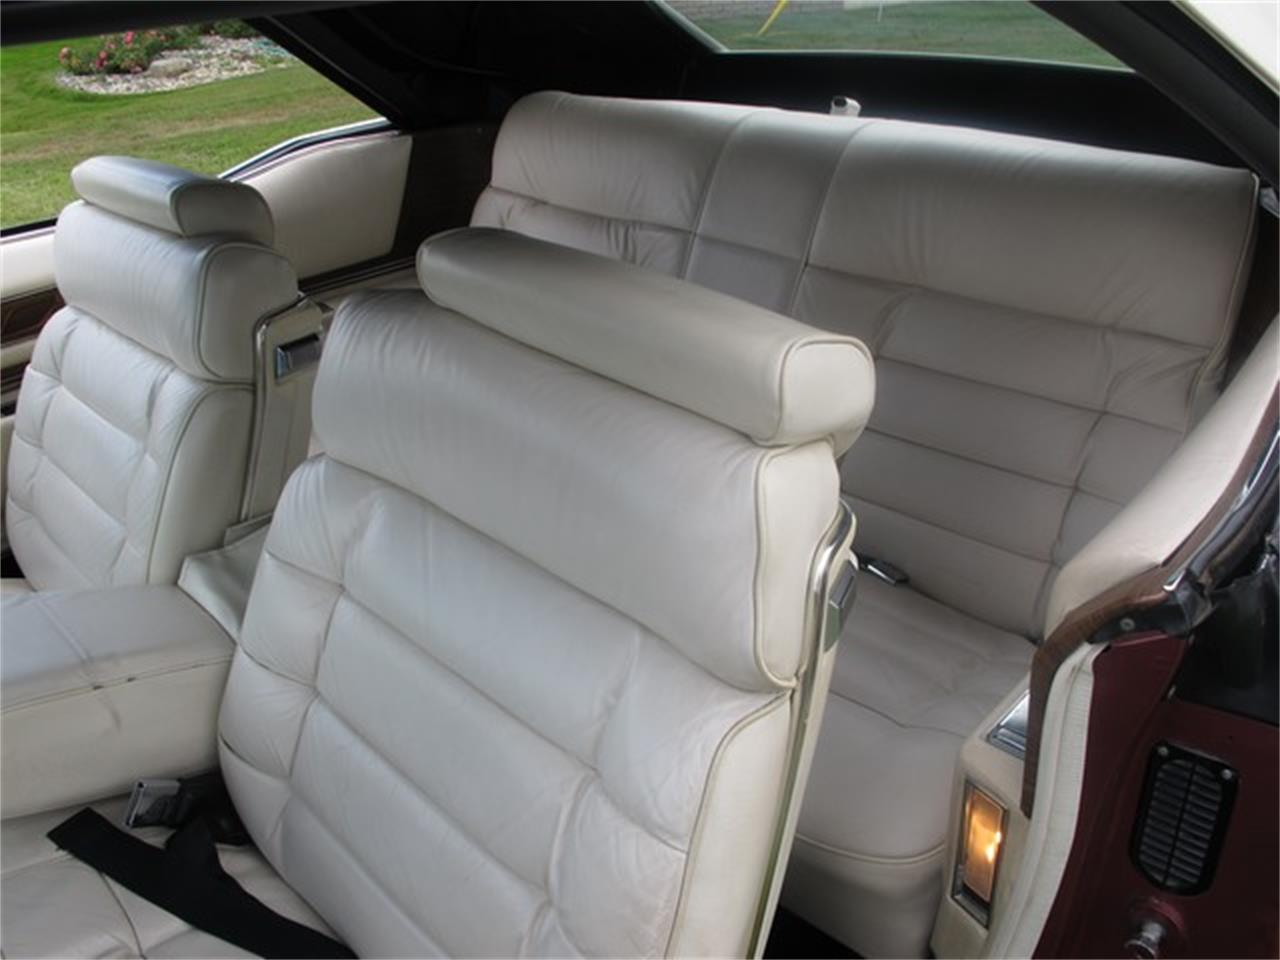 Large Picture of 1975 Cadillac Eldorado located in Michigan - $12,850.00 Offered by Classic Auto Showplace - LQFY